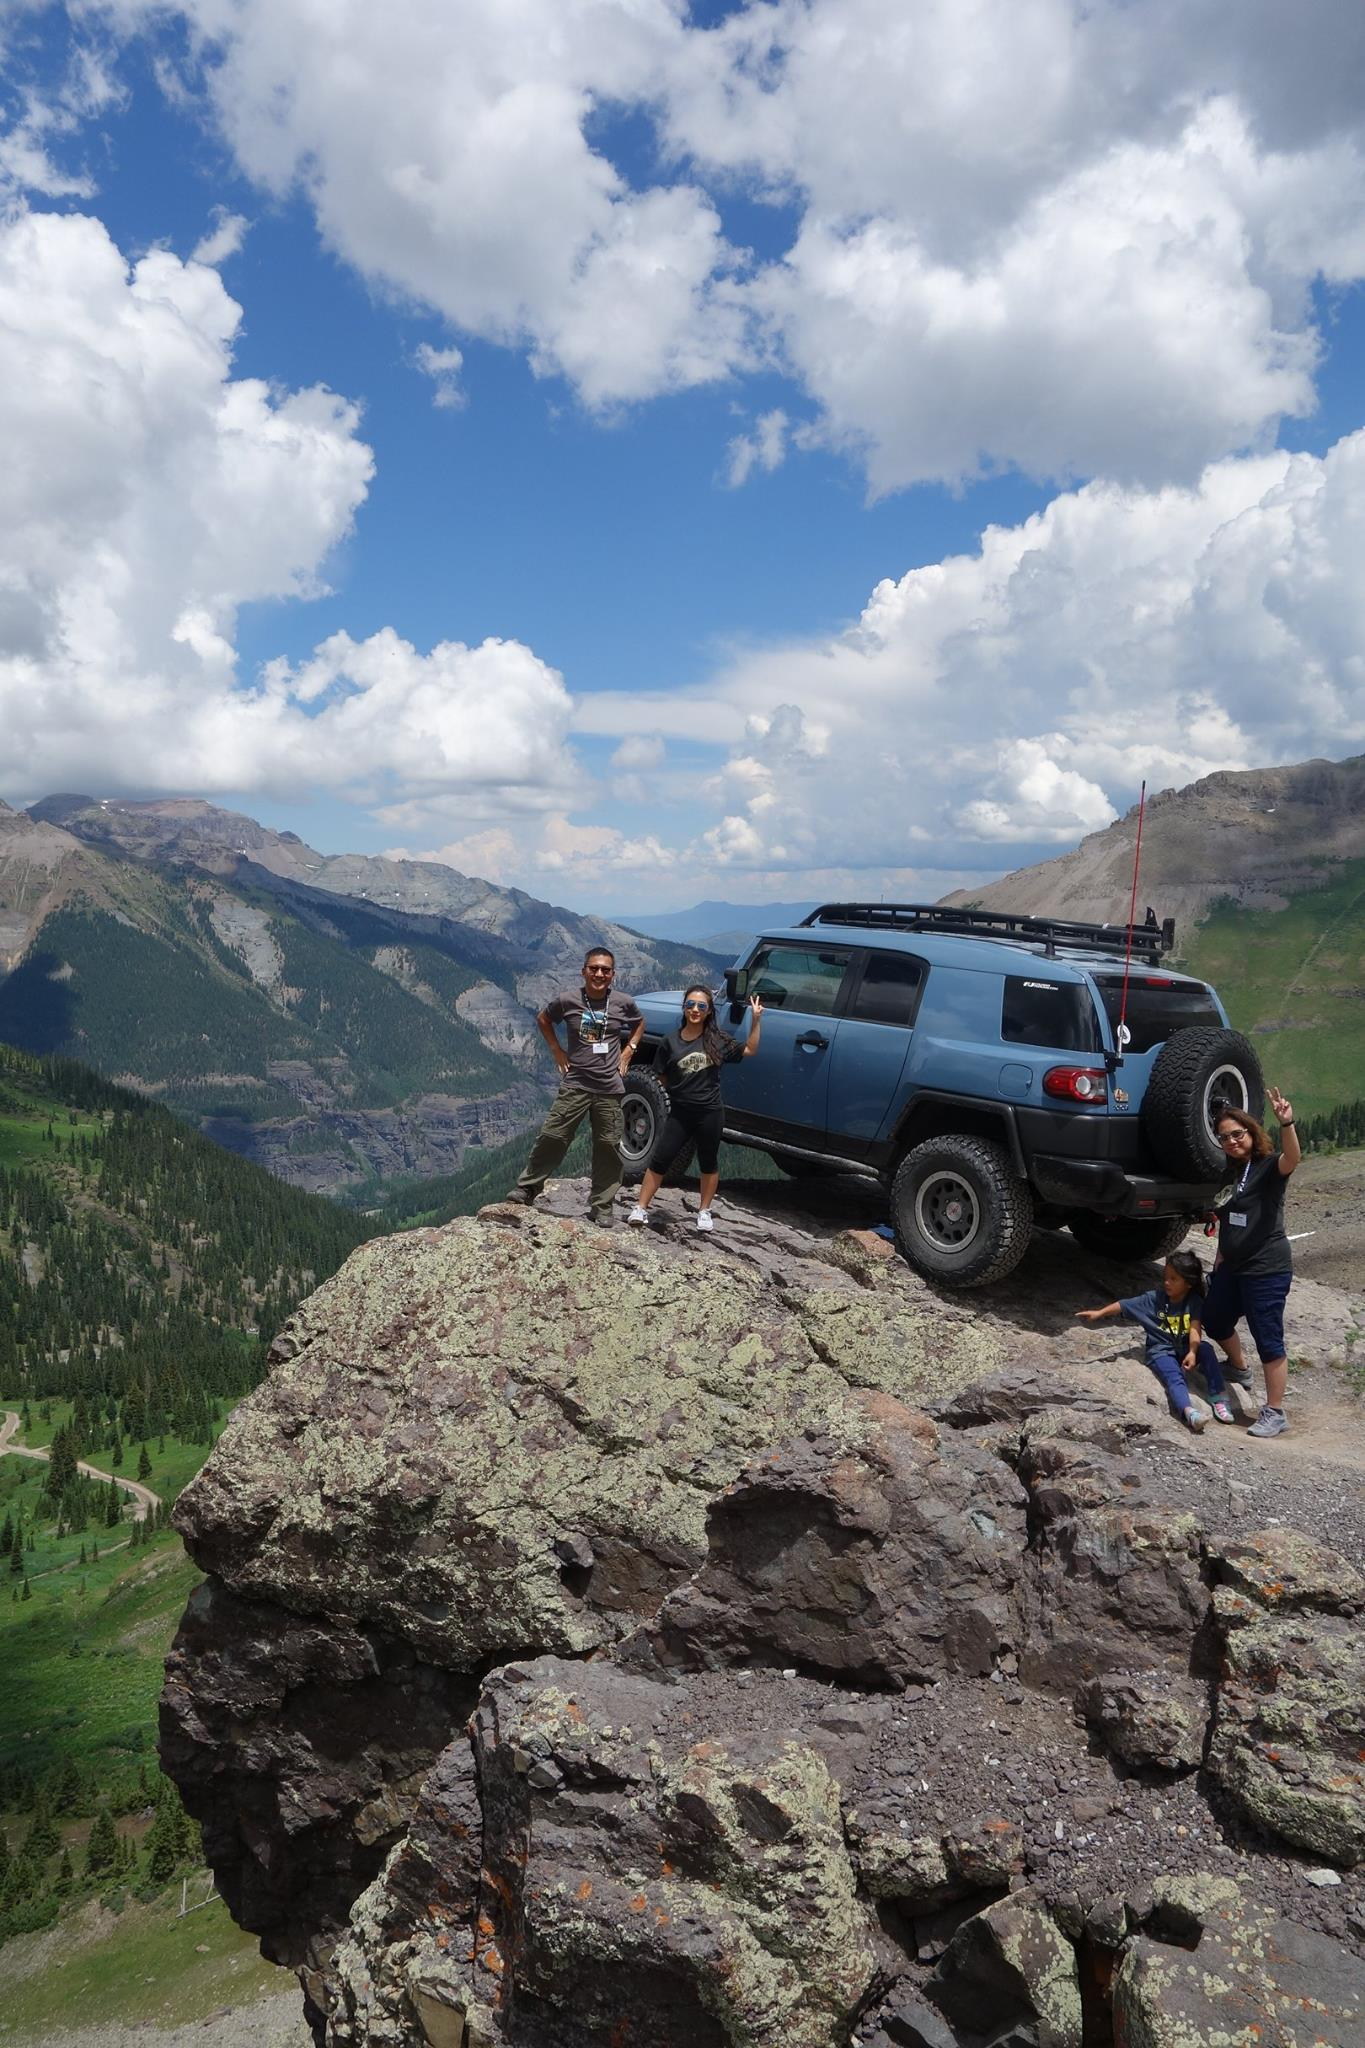 It's an adventure for my family joining the FJ Summit XI. It was our first  Summit and first long drive from California to Ouray, Colorado.